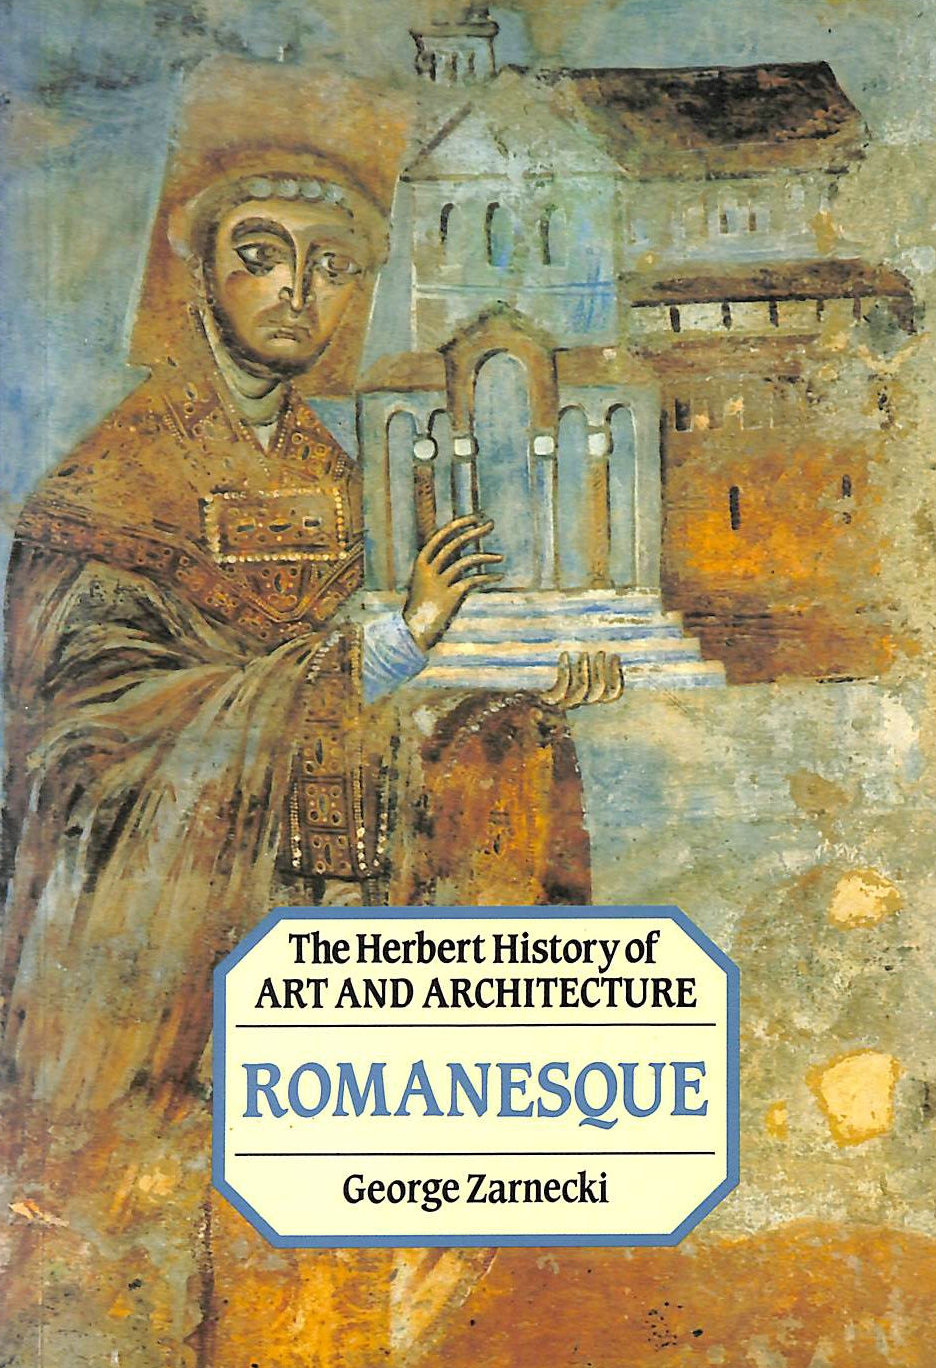 Image for Romanesque, The Herbert History of Art and Architecture.